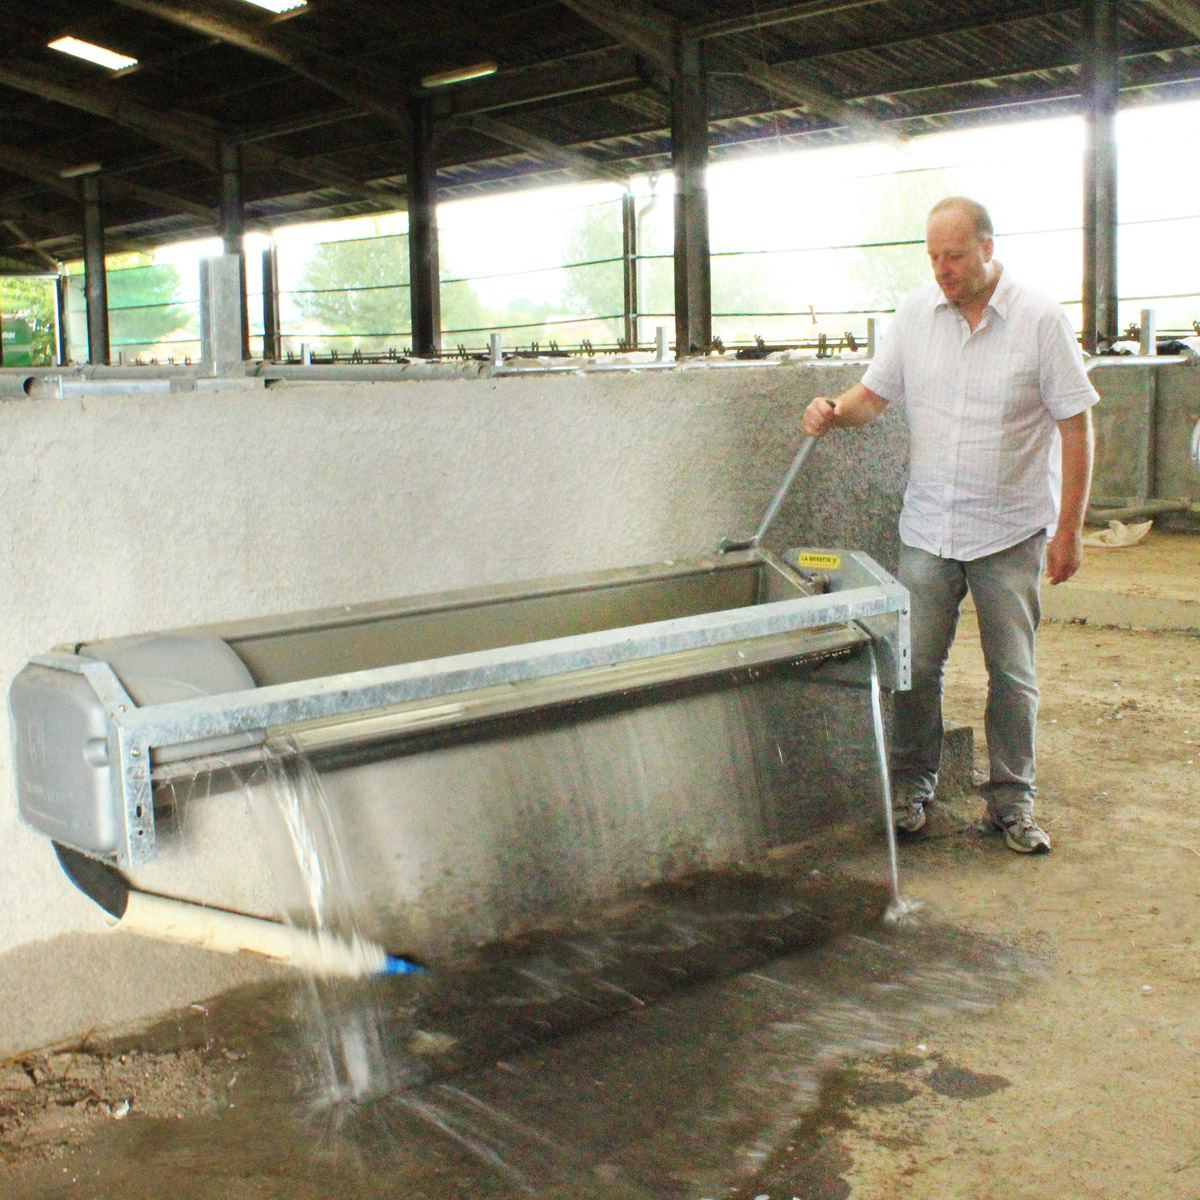 LB230 Stainless Steel Tipping Trough for Dairy Cows